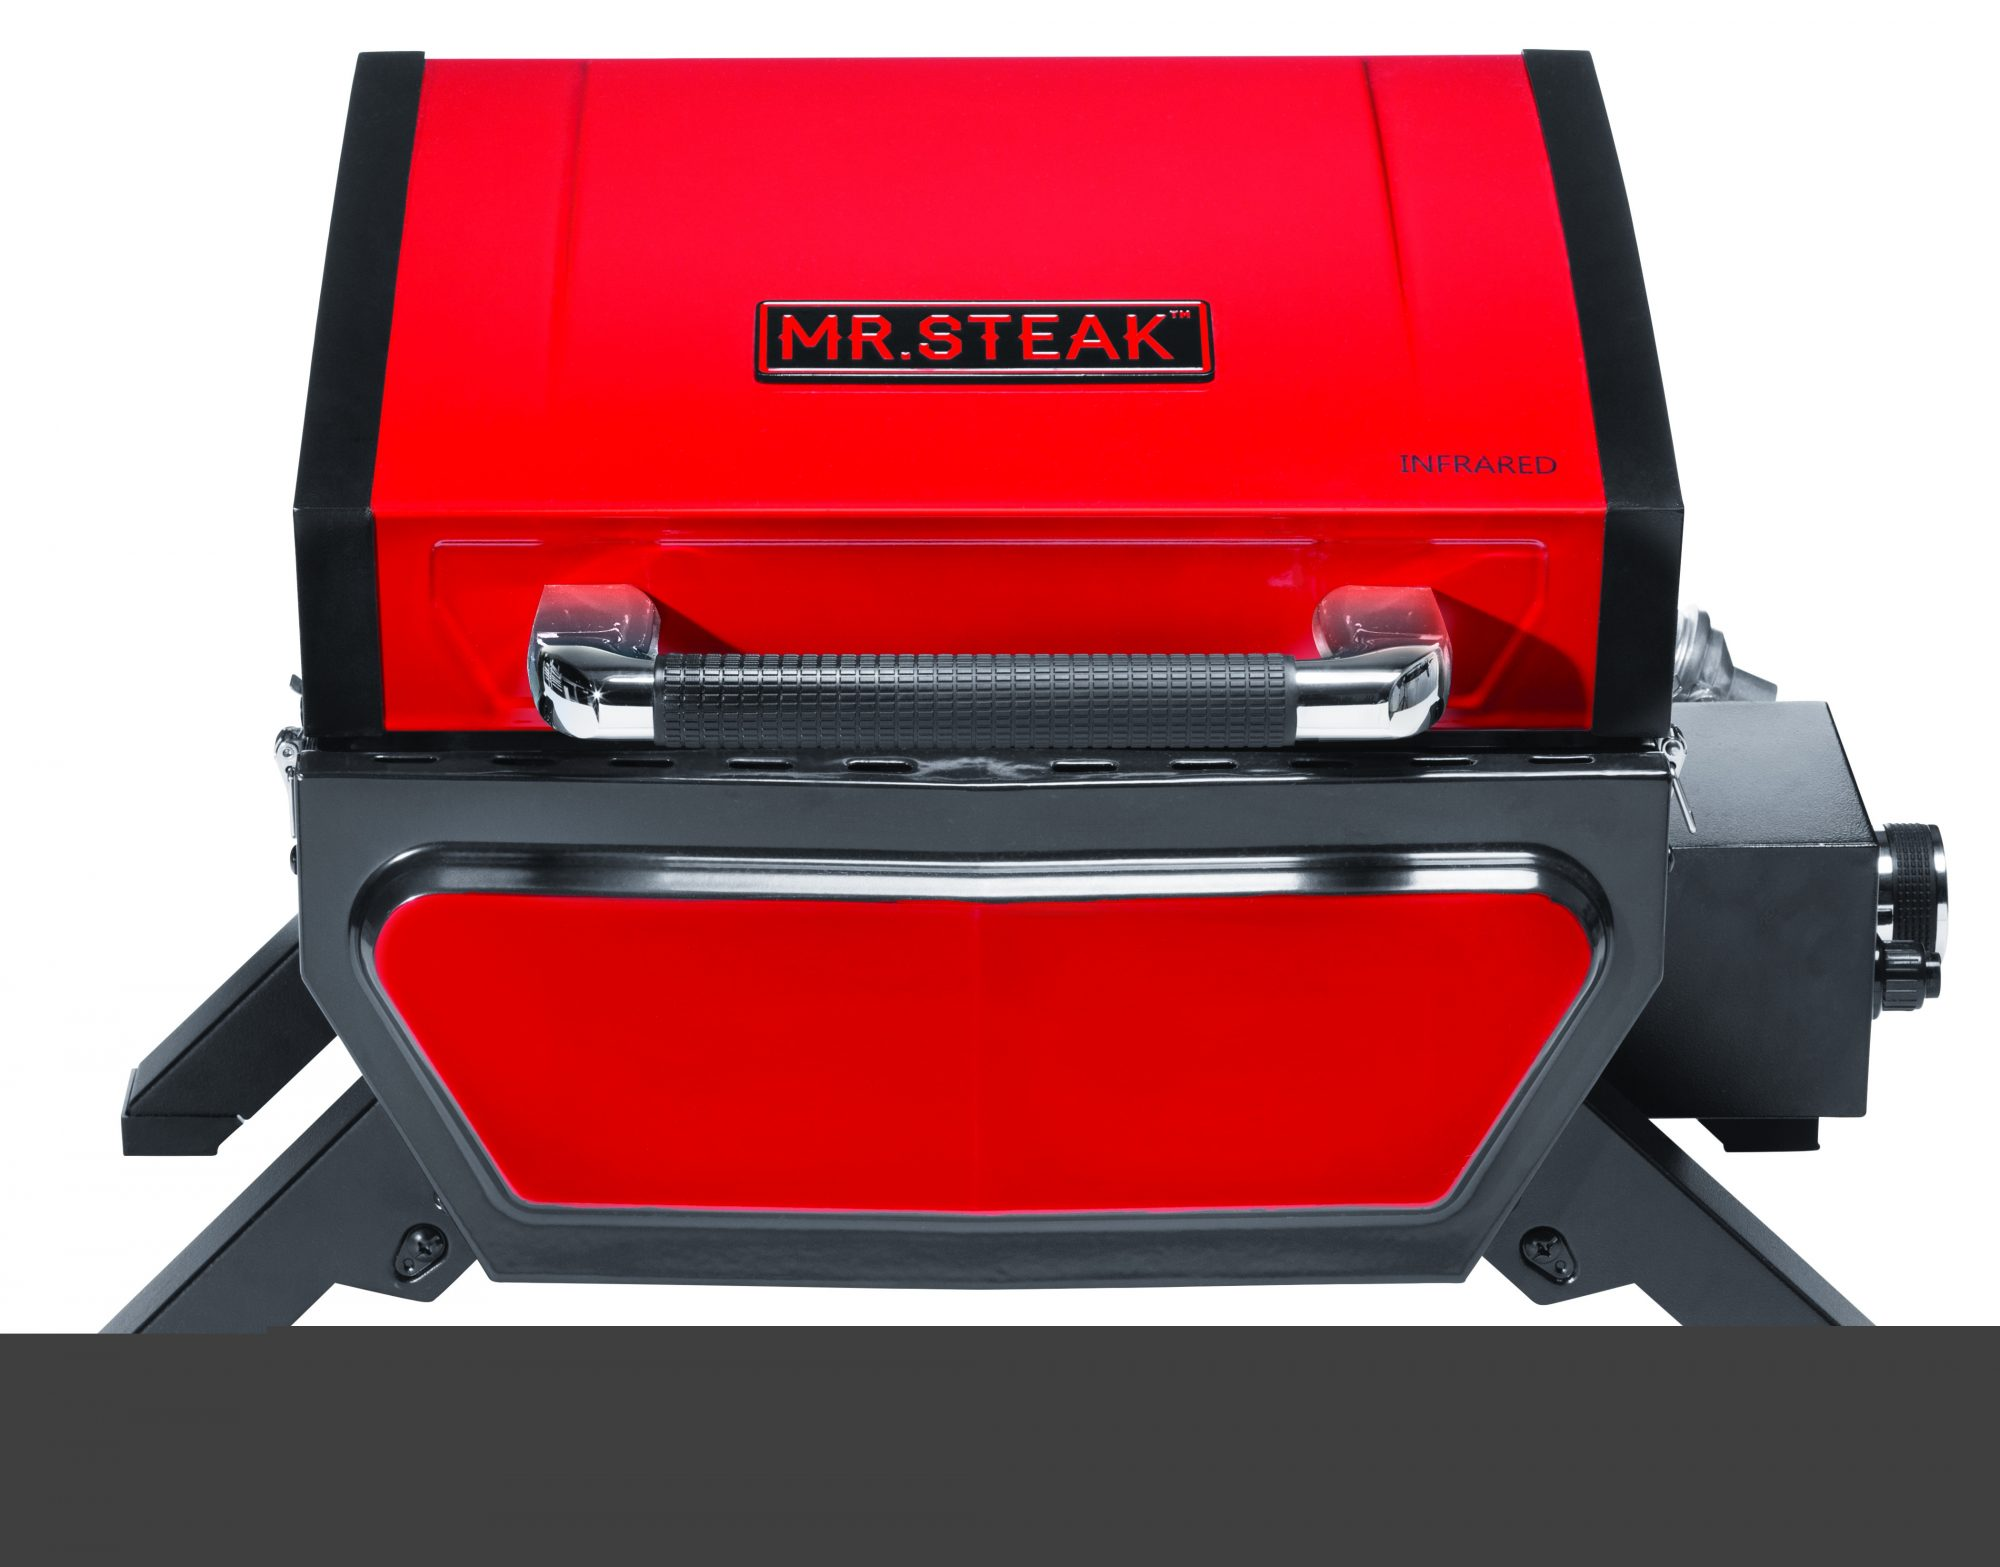 Mr Steak Grill Image